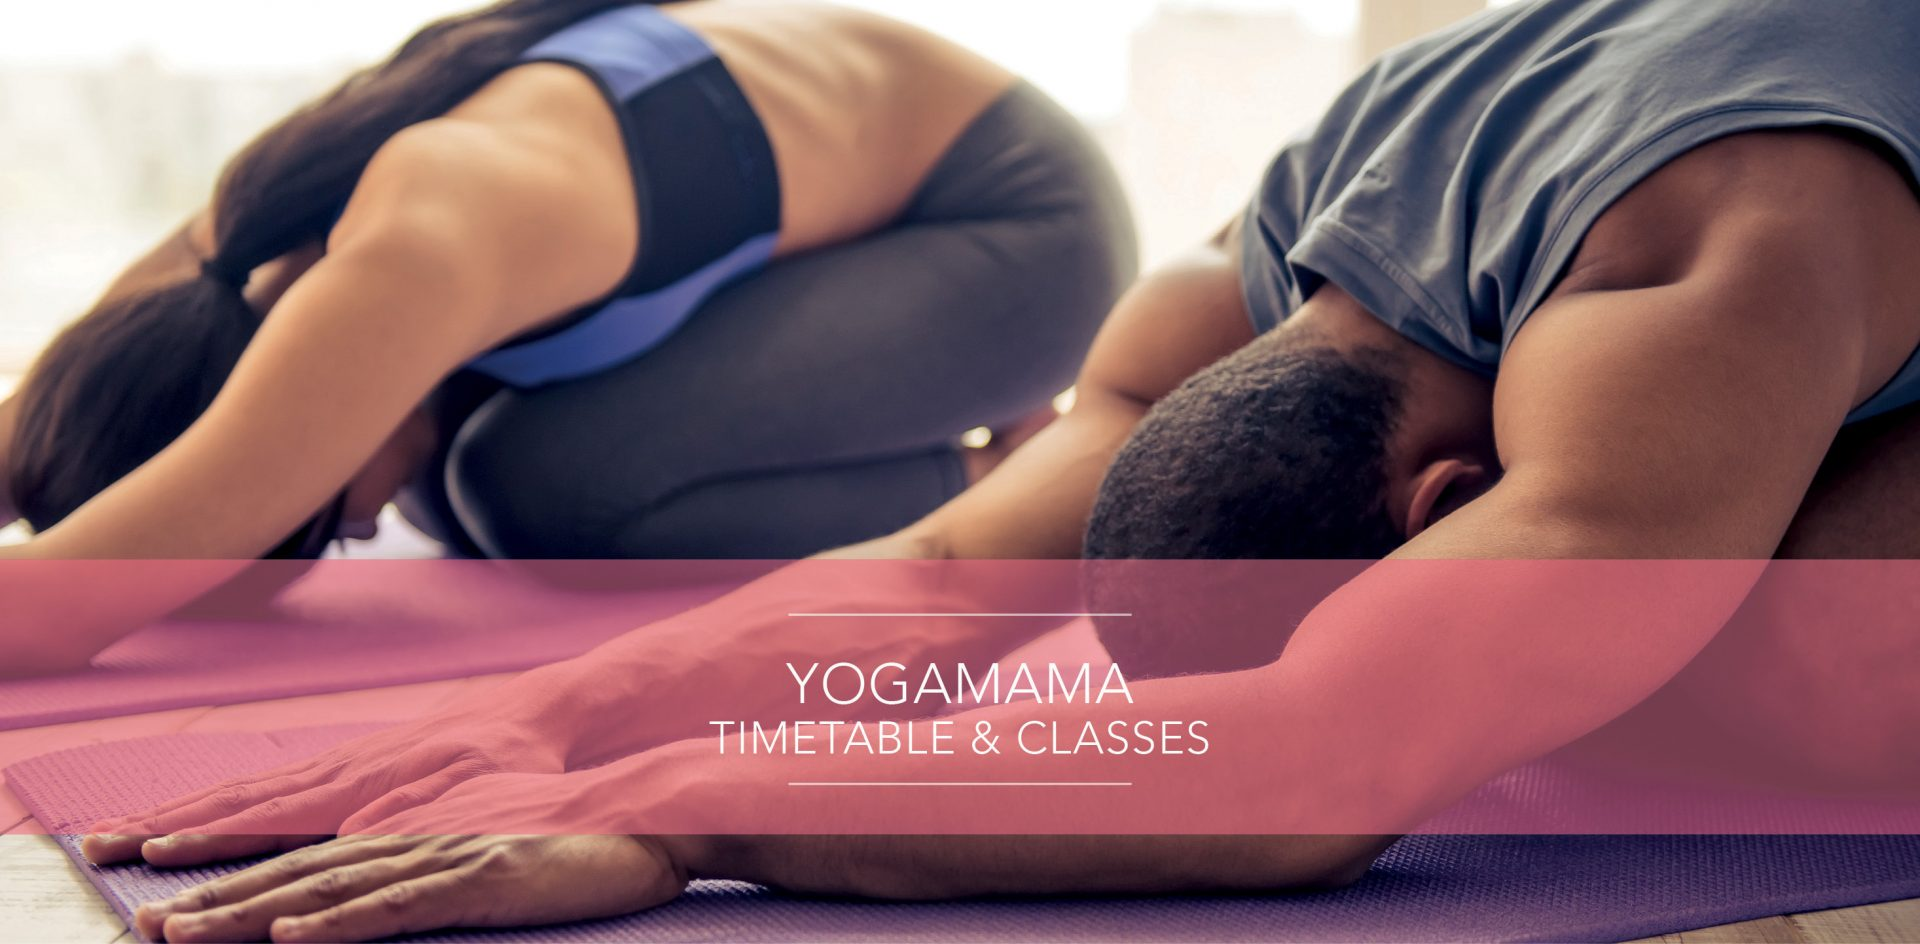 Timetable and prices at Yoga Mama Wellness